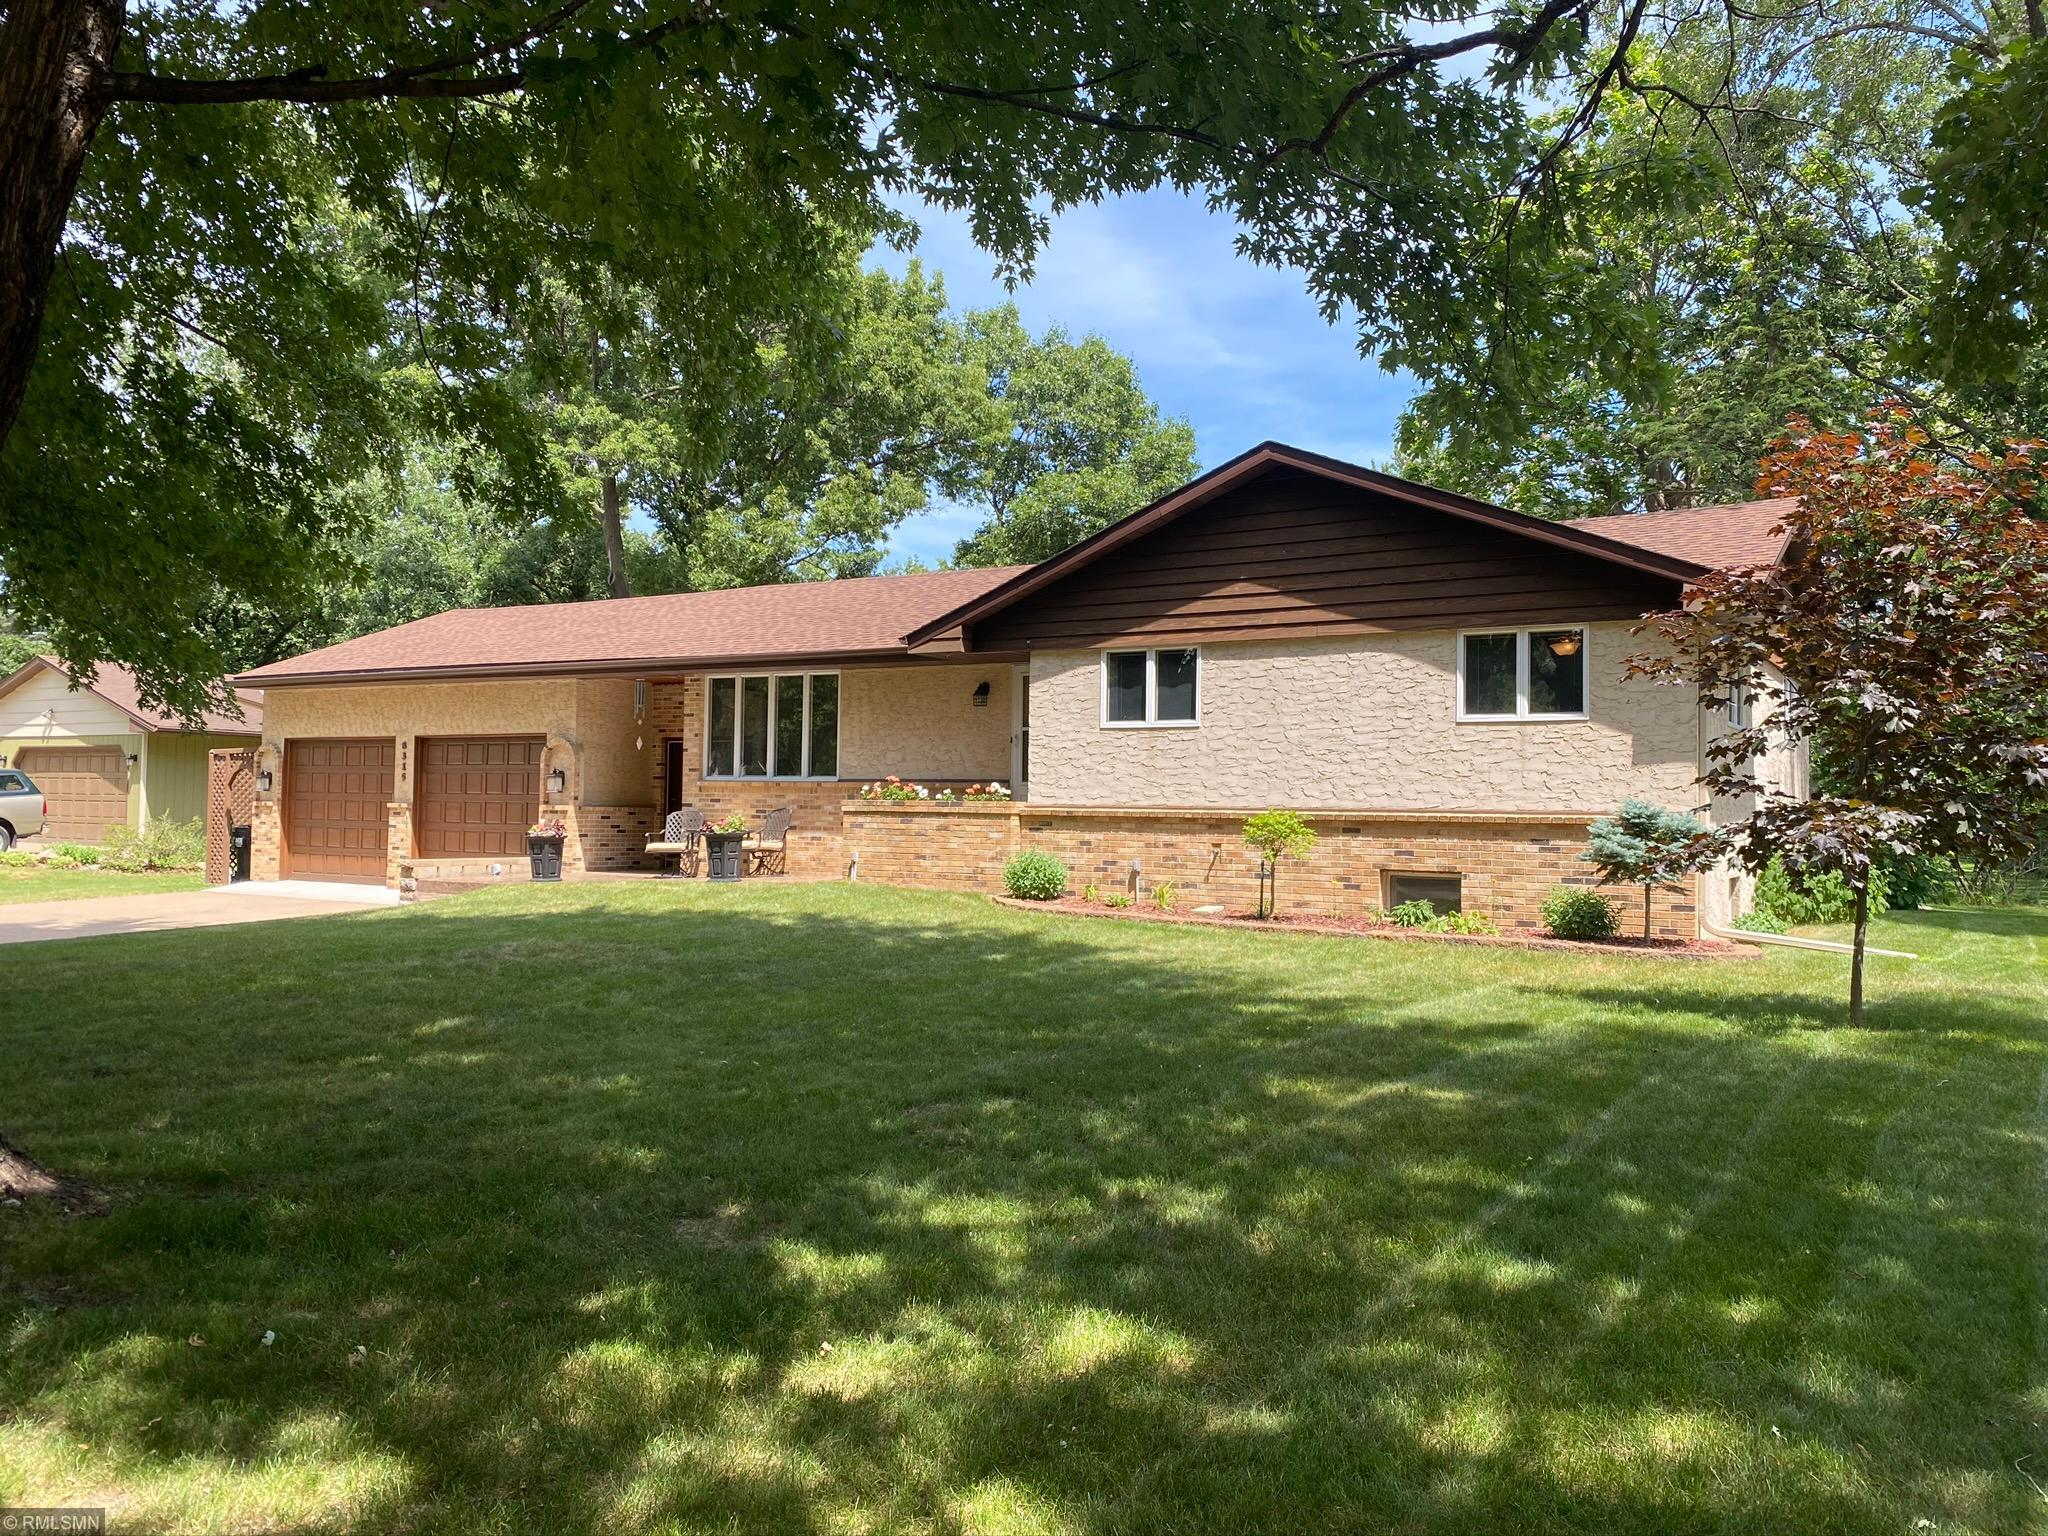 8315 Red Oak Property Photo - Mounds View, MN real estate listing